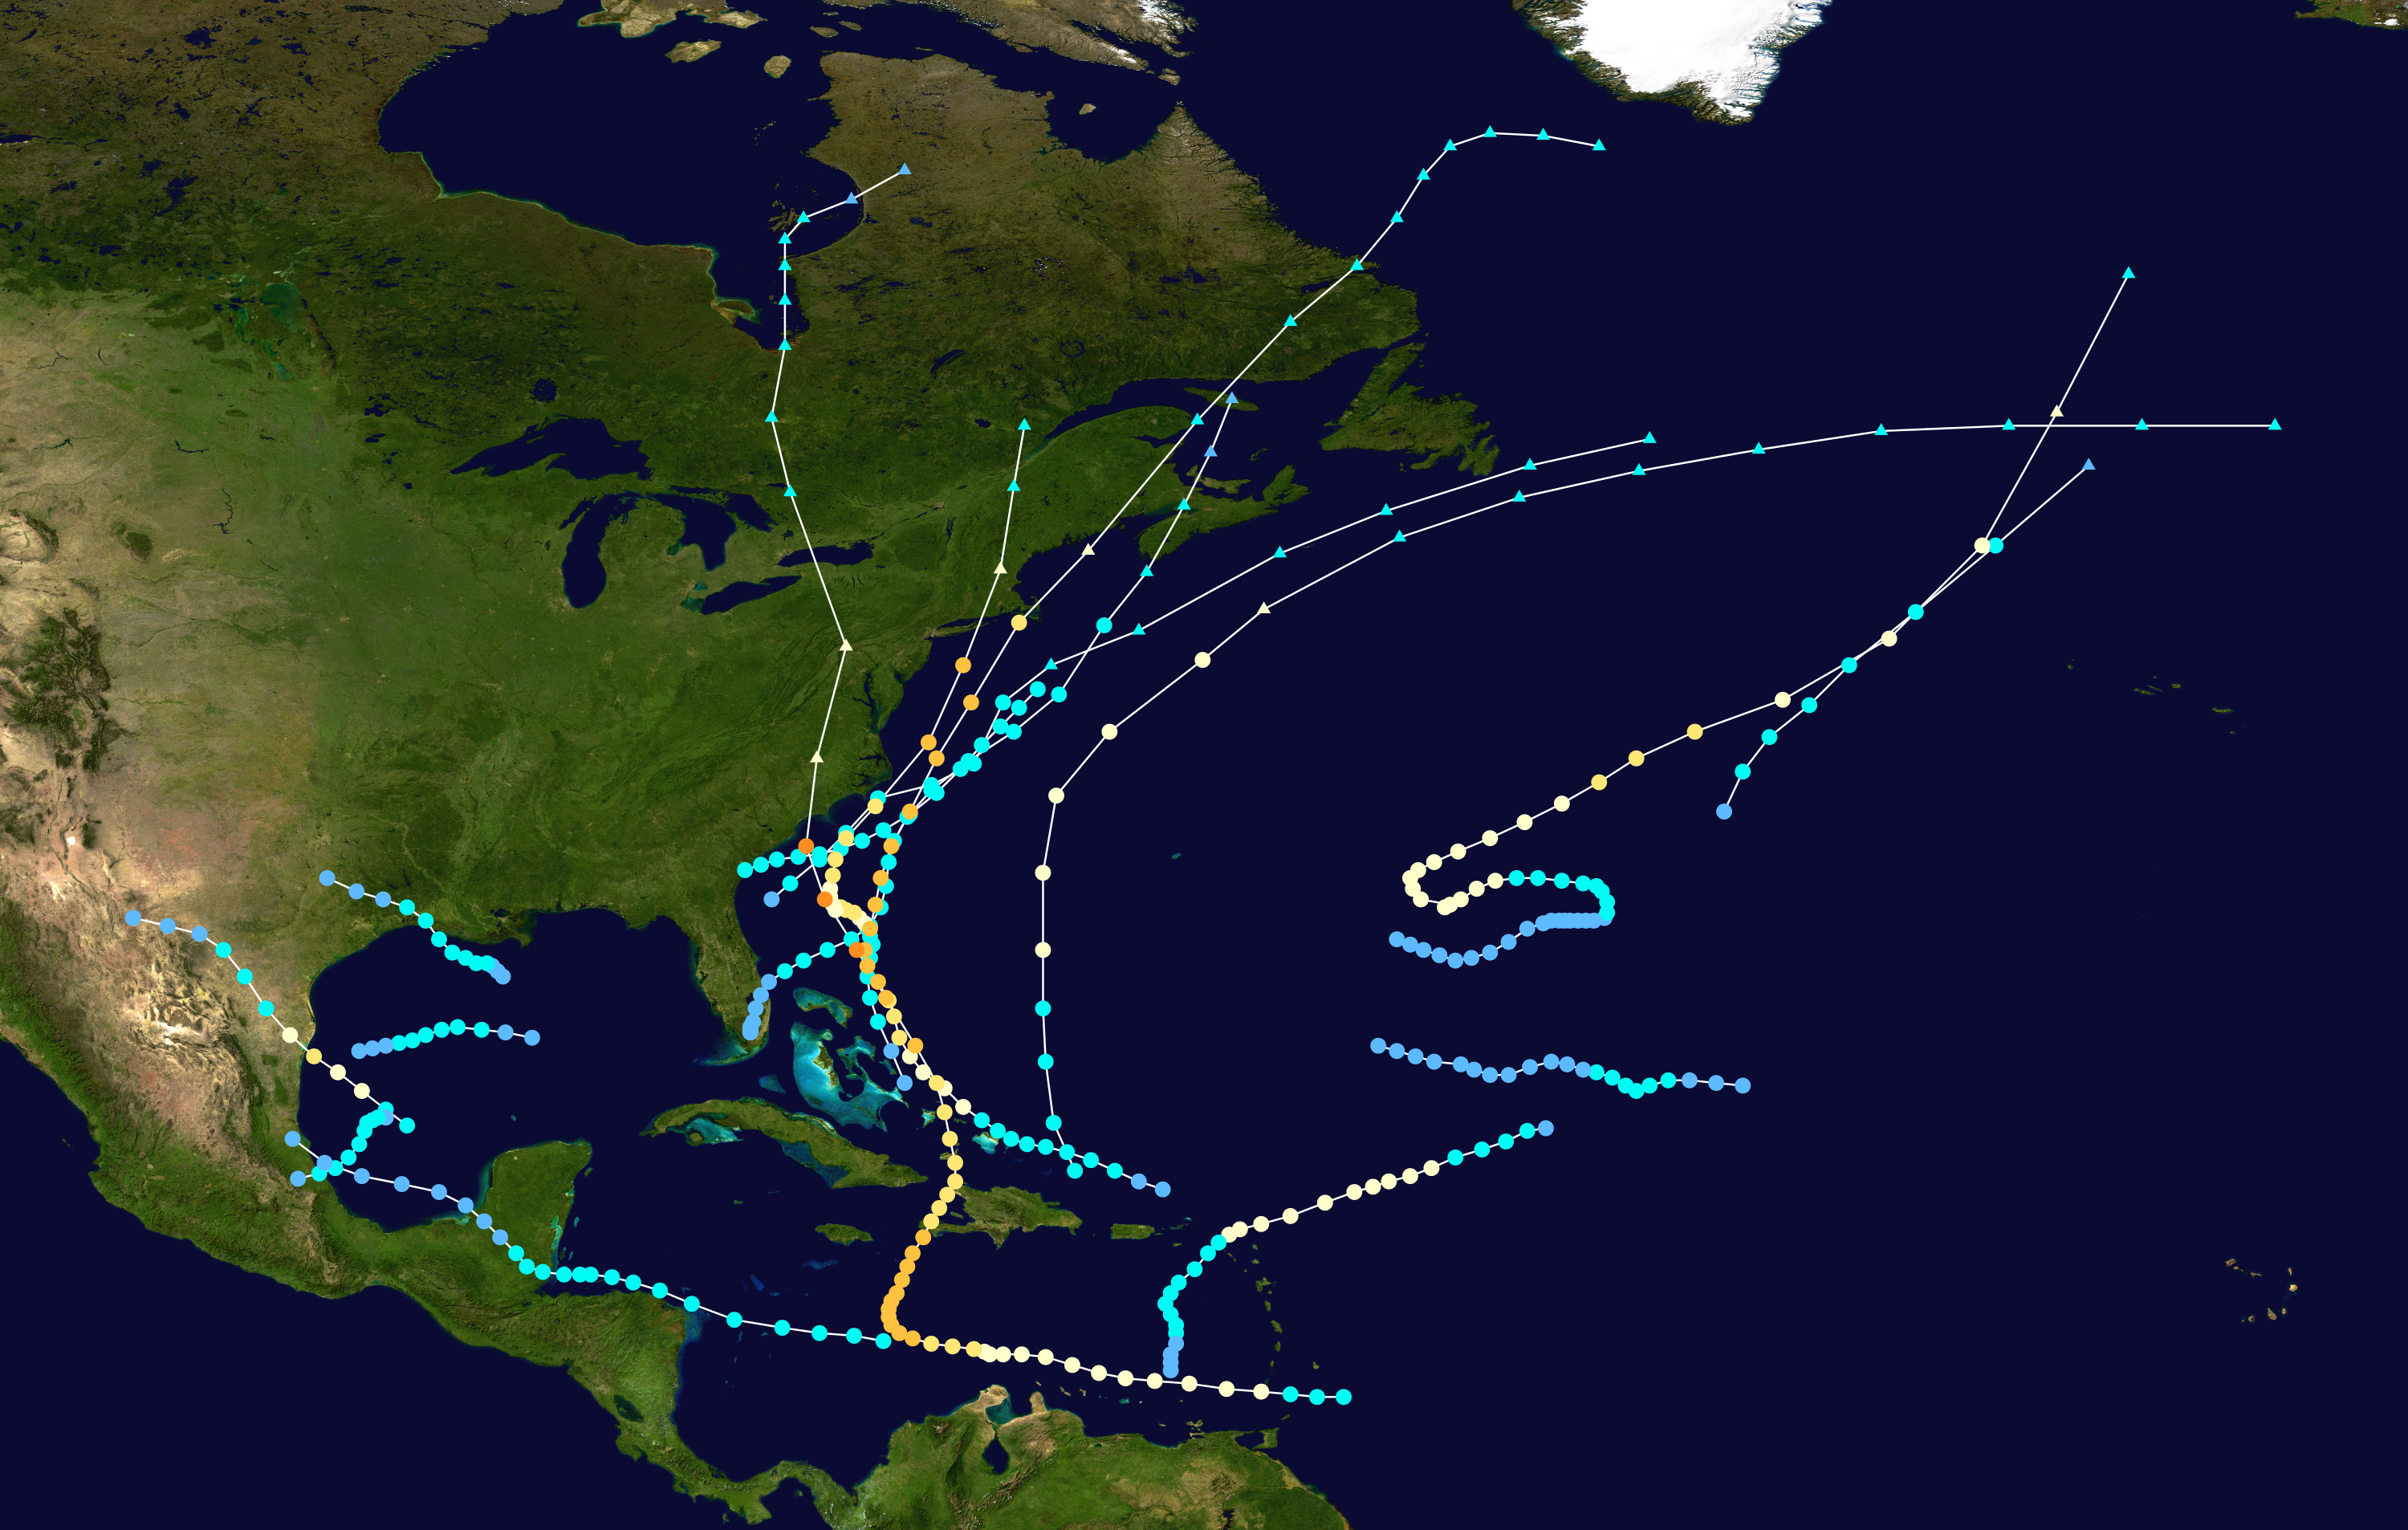 https://upload.wikimedia.org/wikipedia/commons/0/0f/1954_Atlantic_hurricane_season_summary_map.png